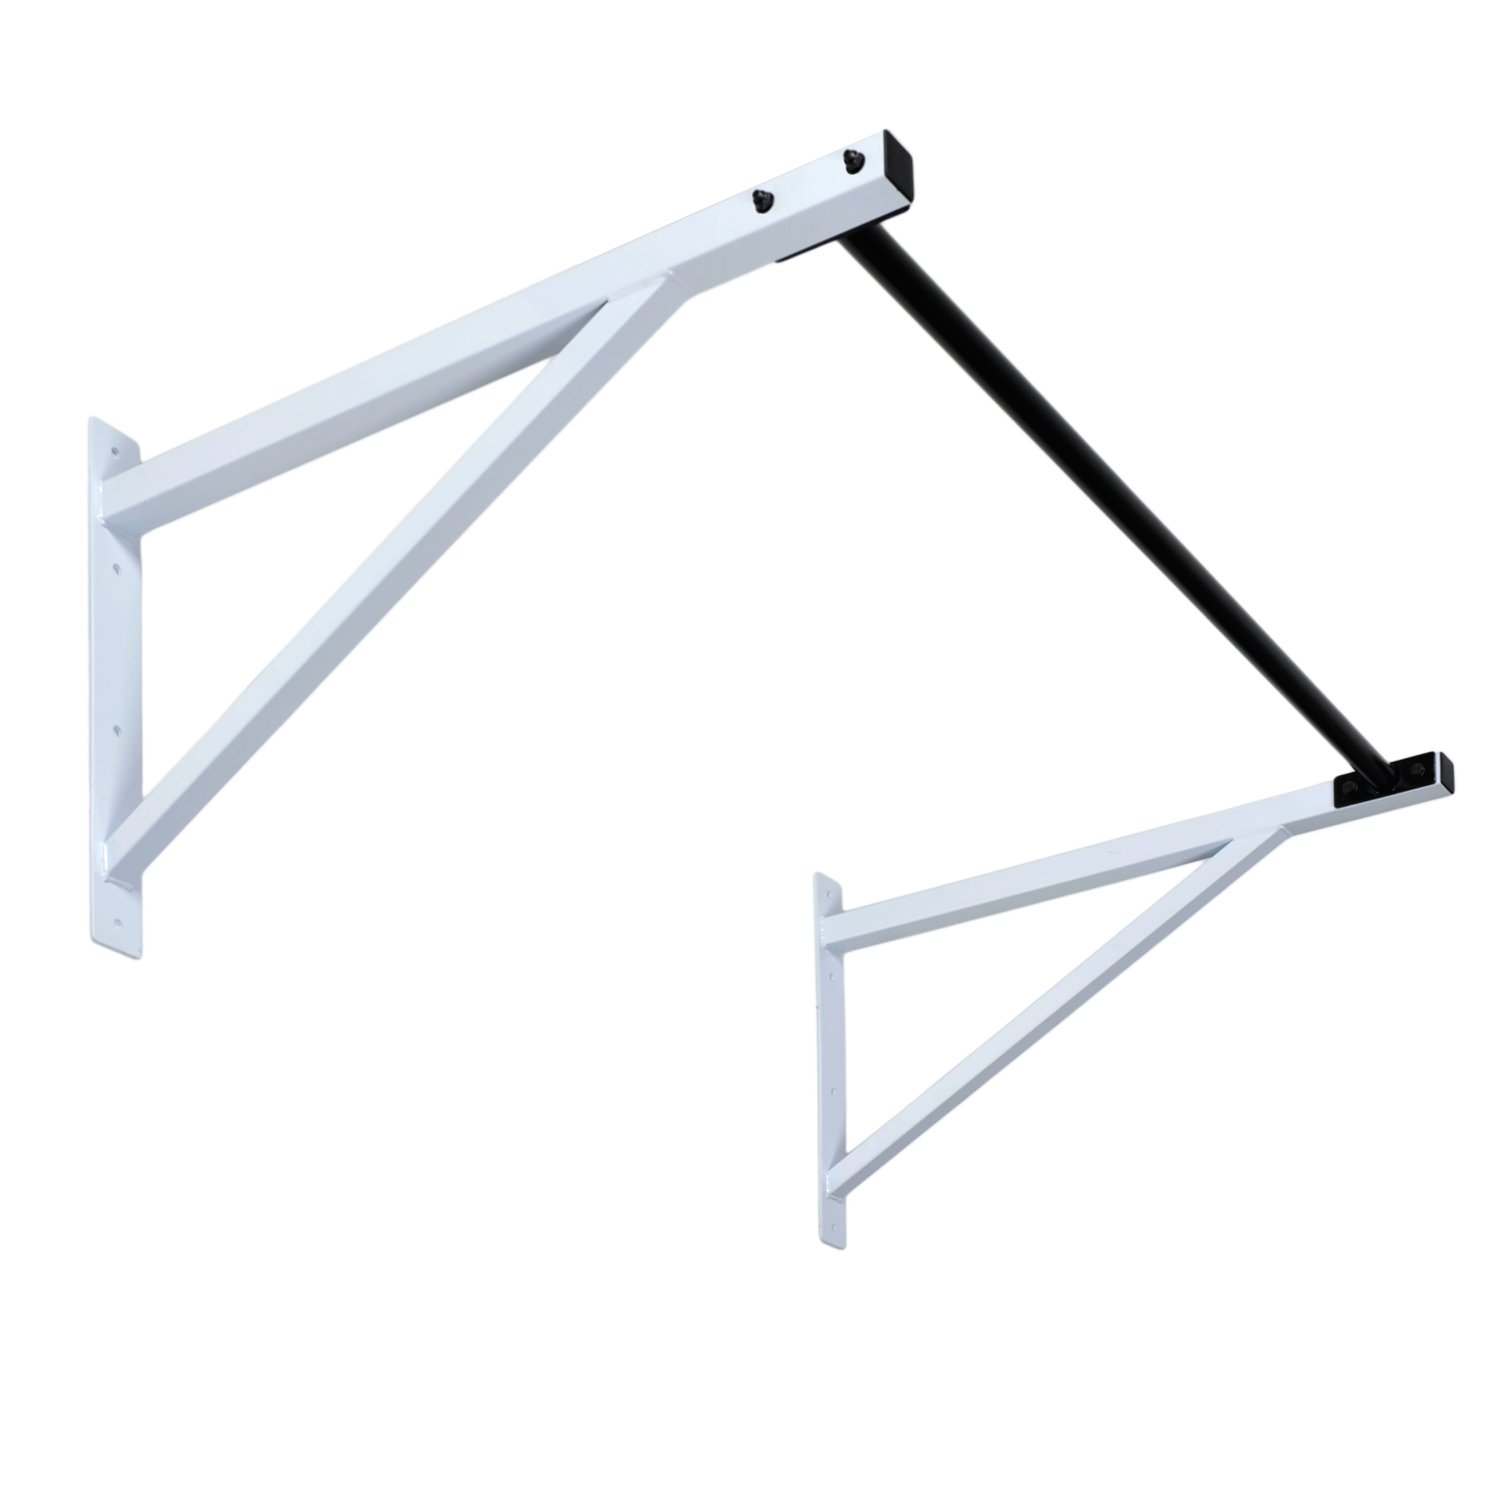 Ultimate Body Press Wall Mount XL Pull Up Bar by Ultimate Body Press